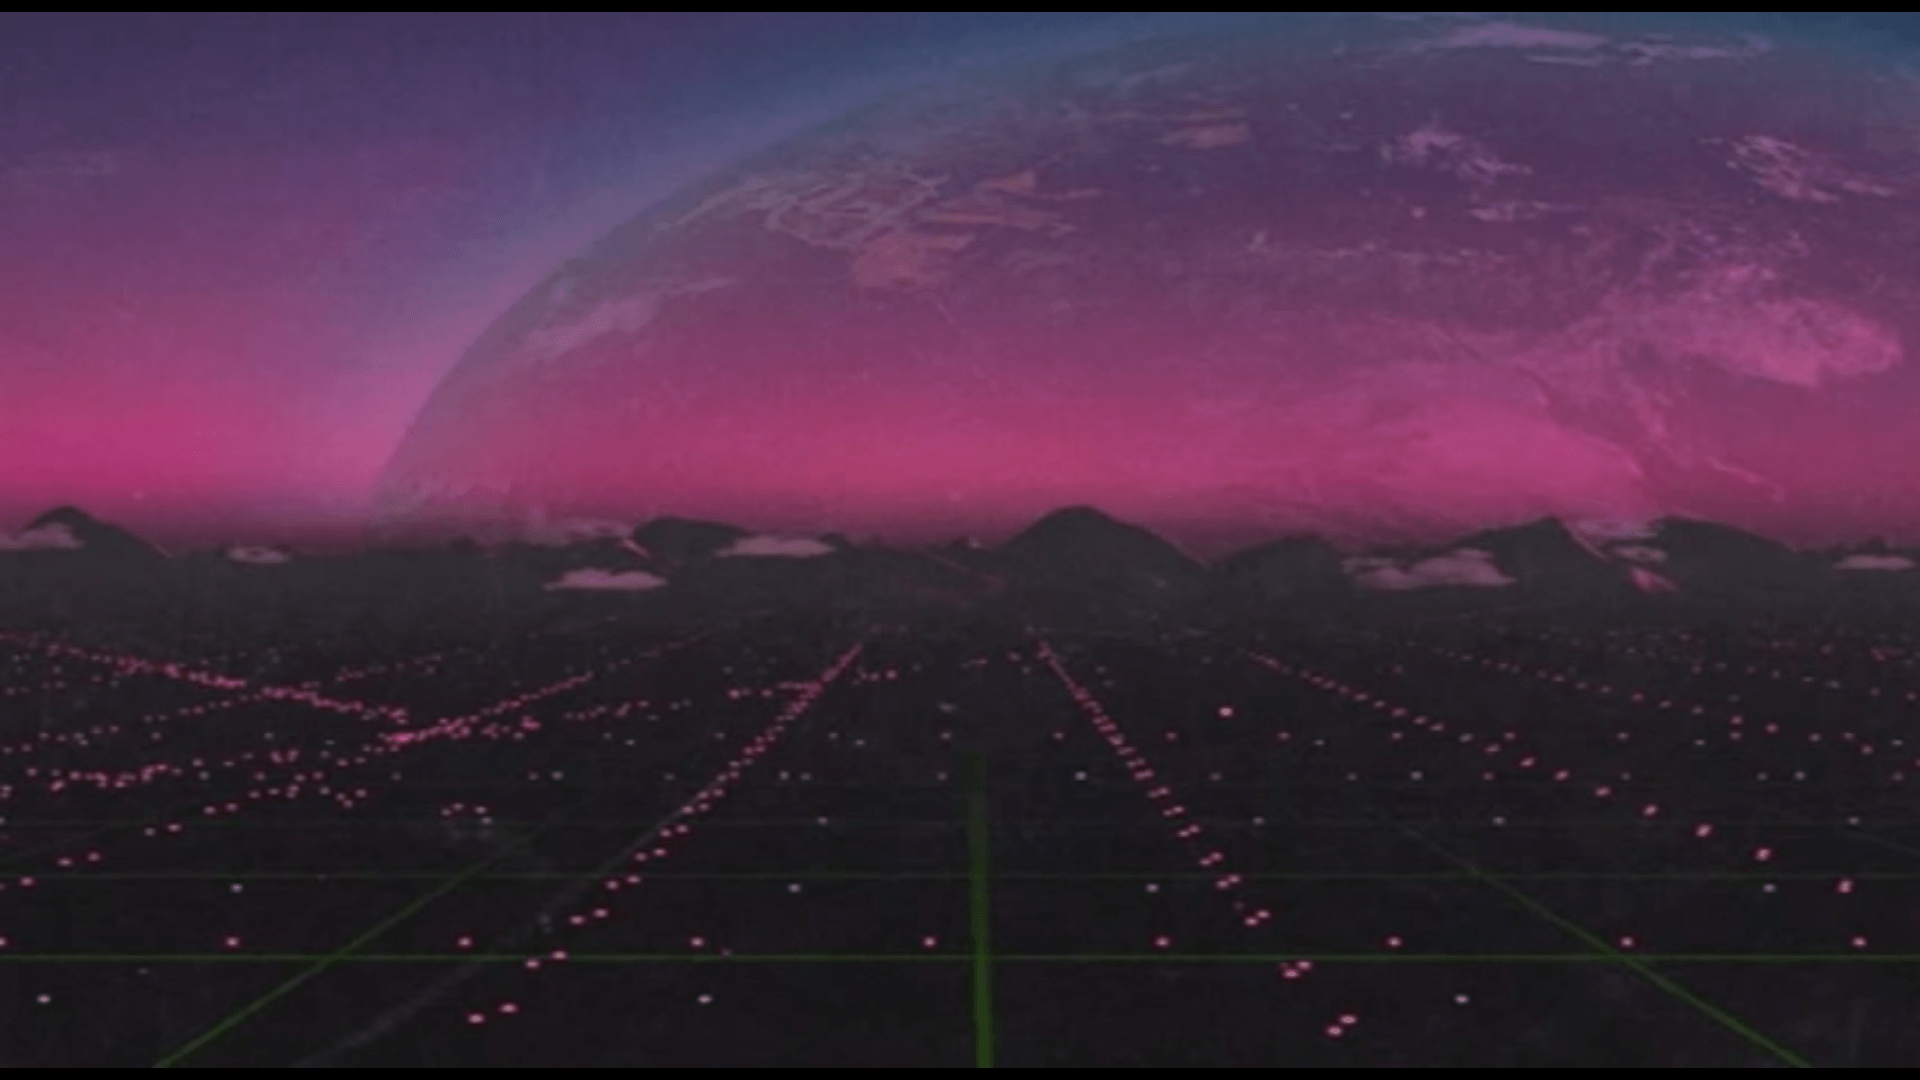 Does imgur like Retrowave/Synthwave? Take my list of